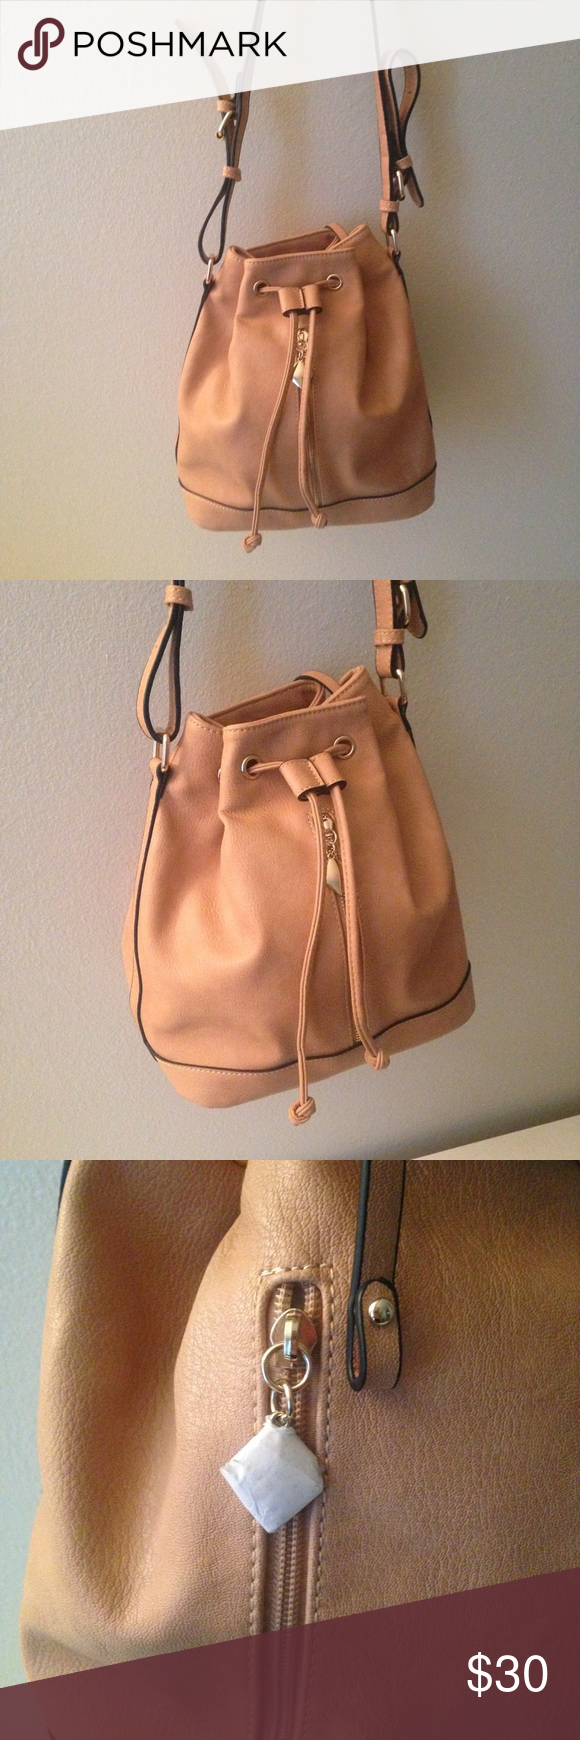 Peach bucket bag Vegan leather. Super cute, adjustable straps with drawstring and magnetic closure. Like new condition. Gold tone hardware. Paper still on zipper Bags Shoulder Bags